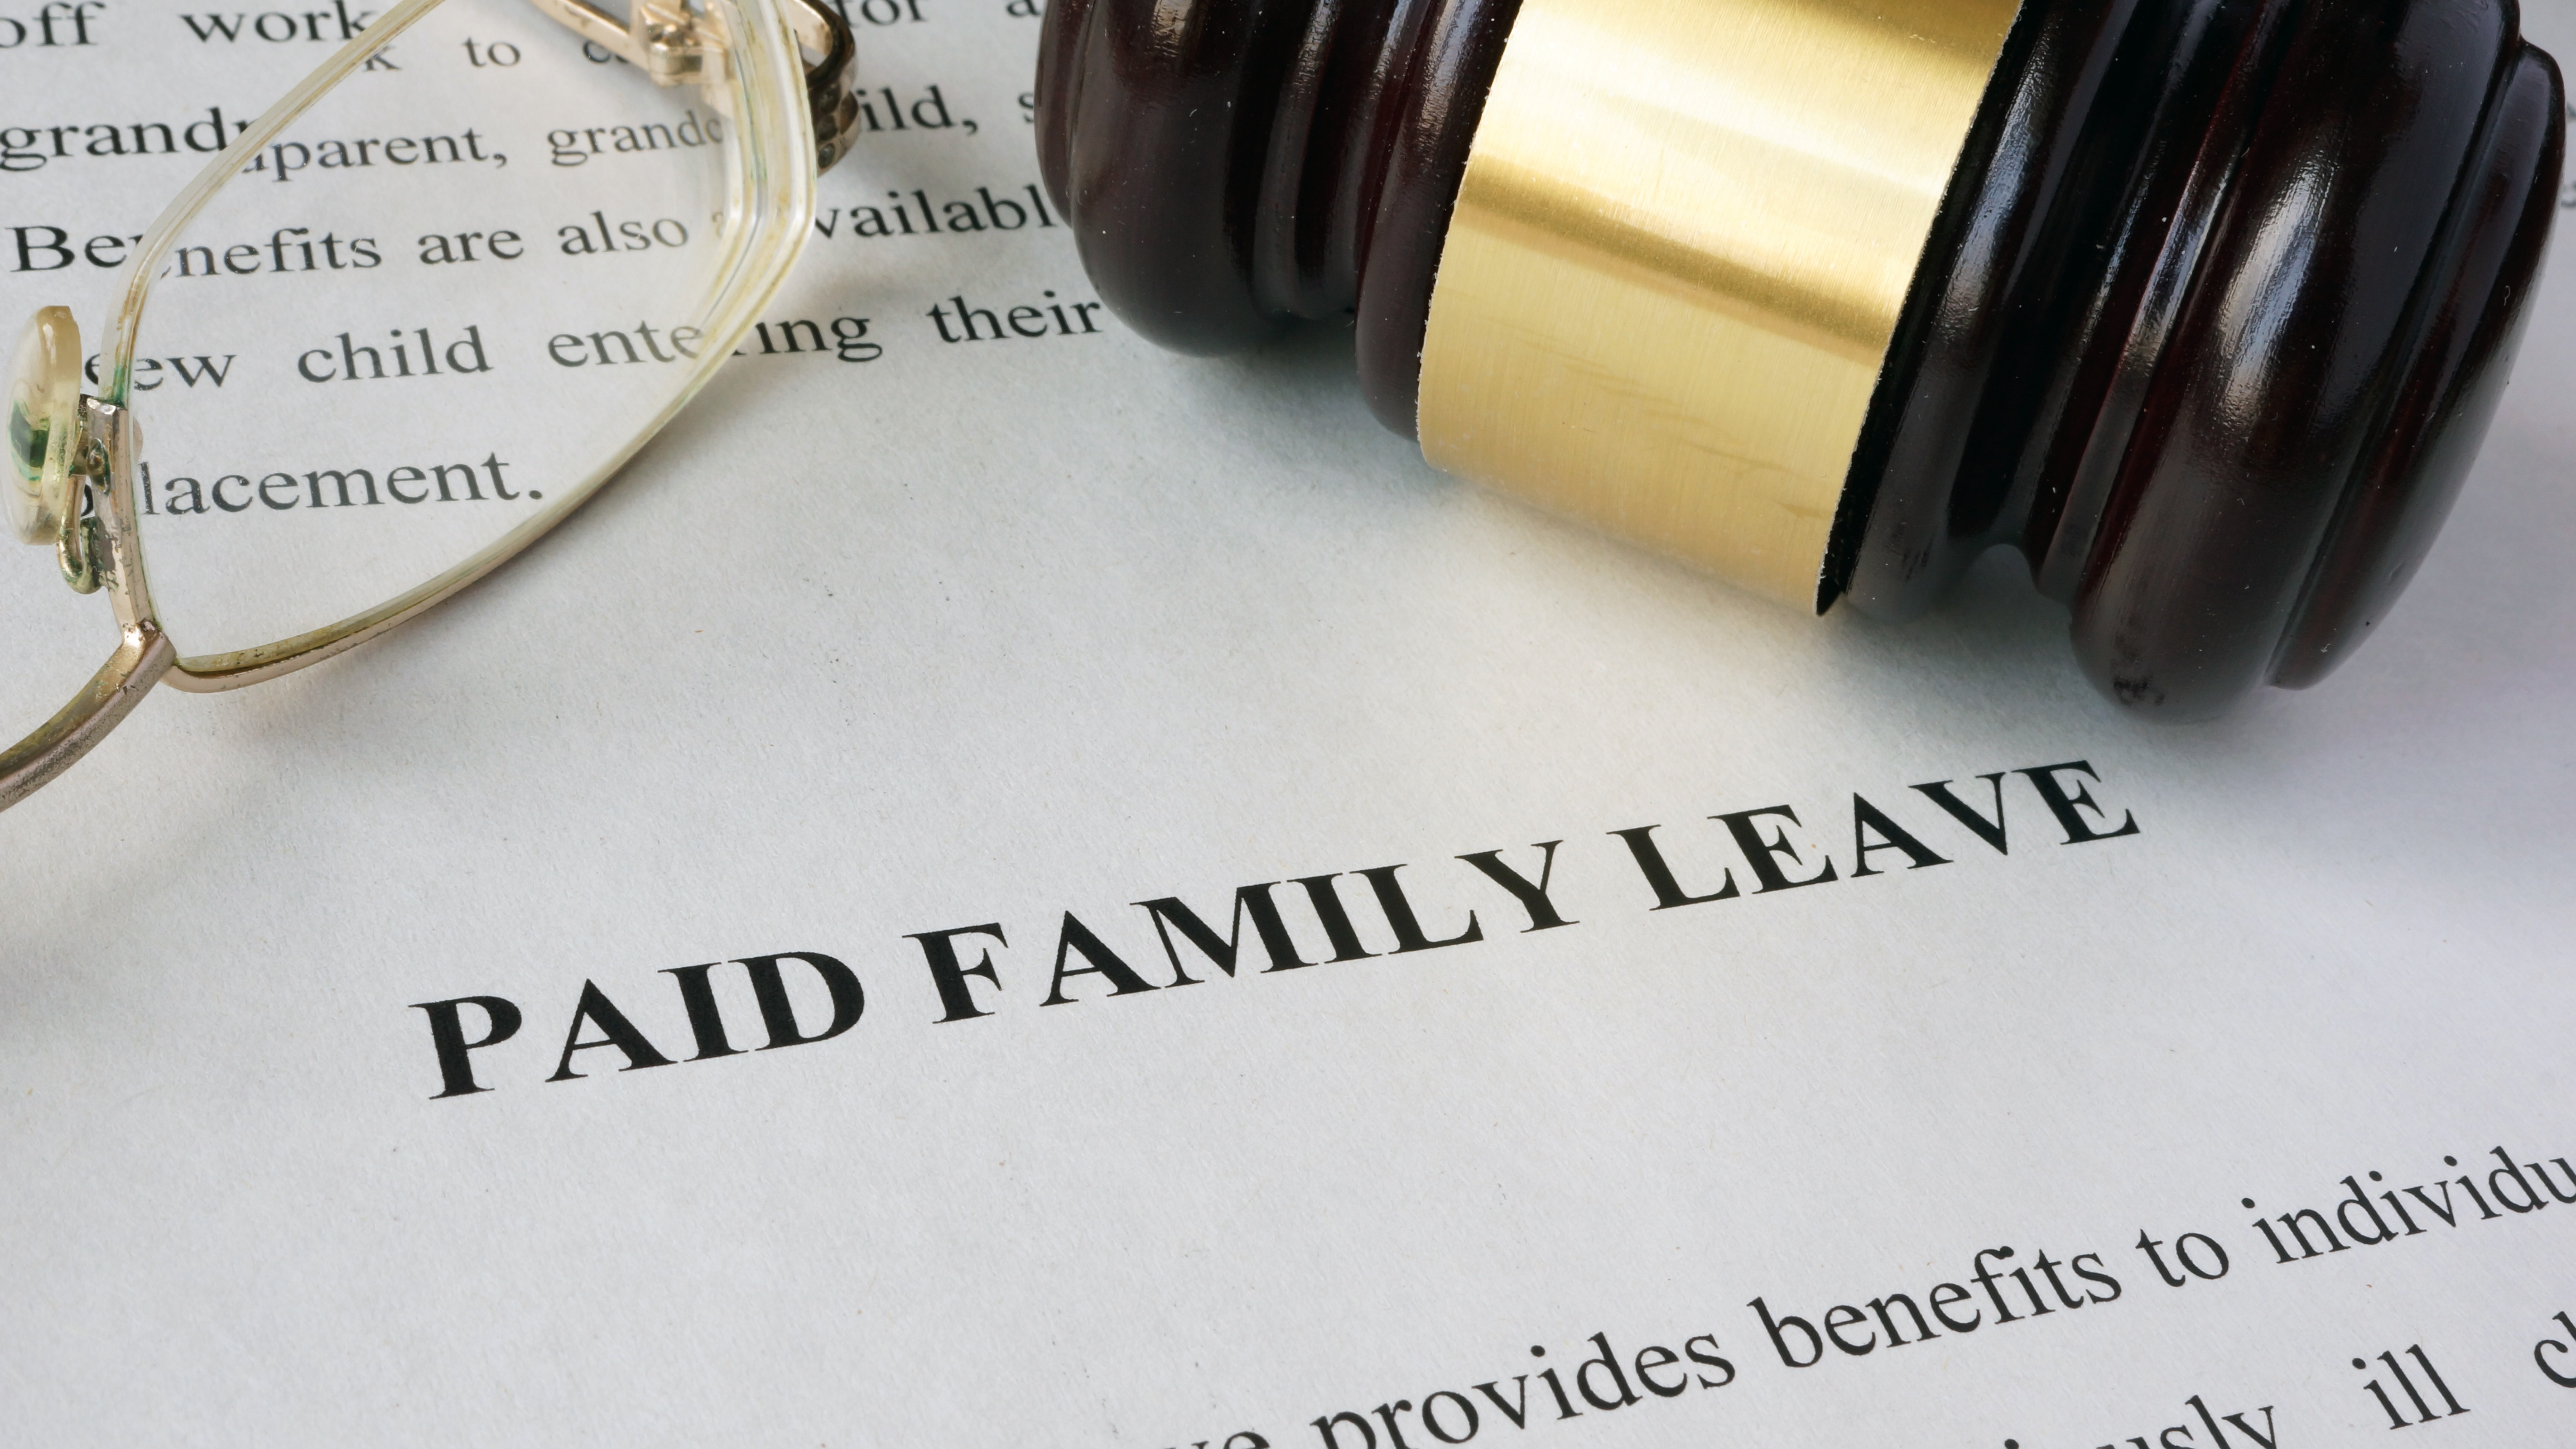 New York Paid Family Leave effective 1/1/18